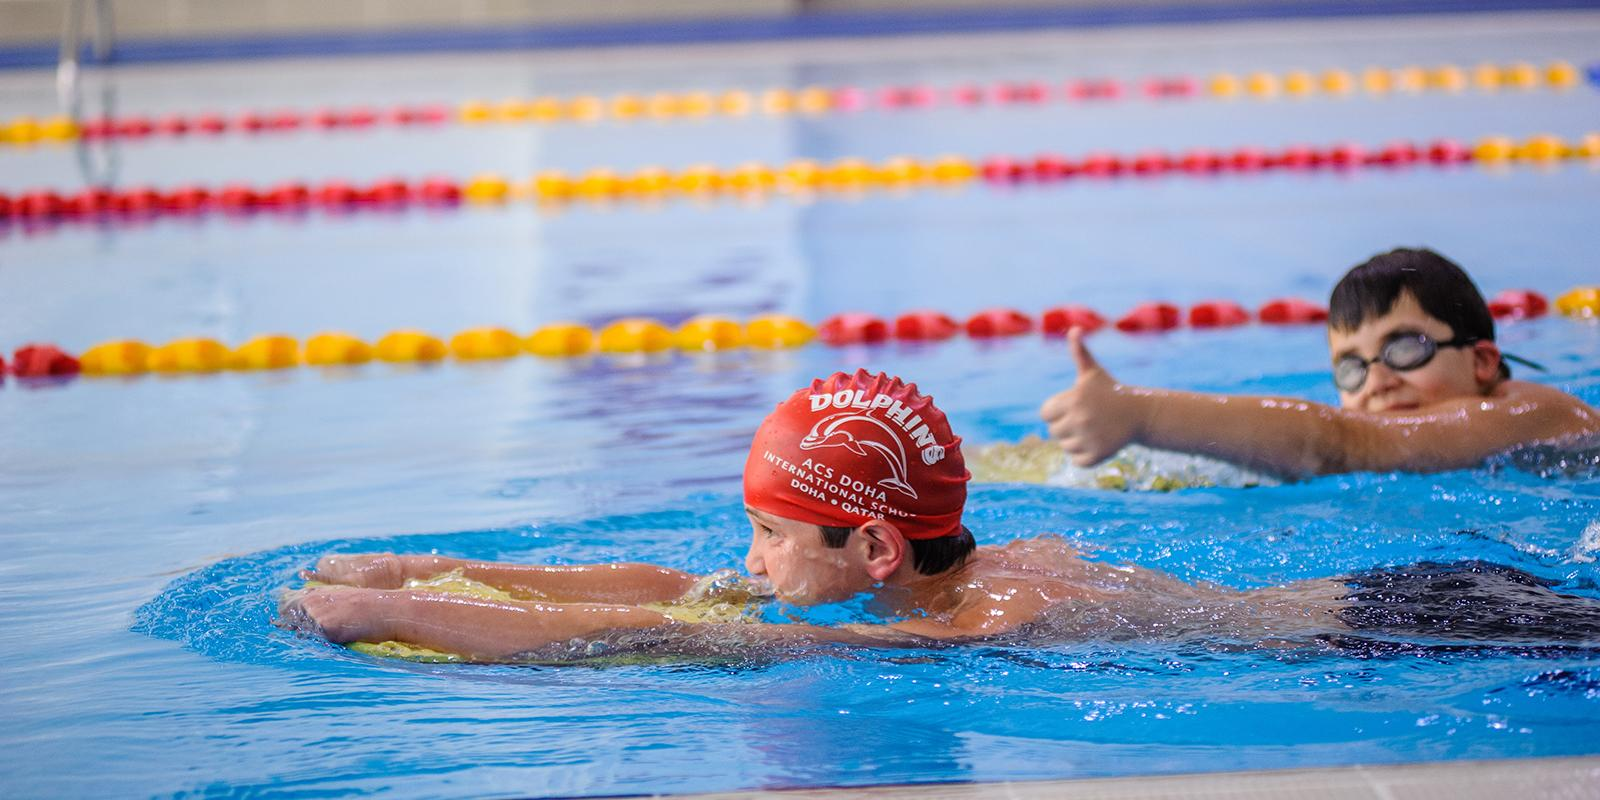 Sport Curriculum ACS Doha students competing in swimming pool